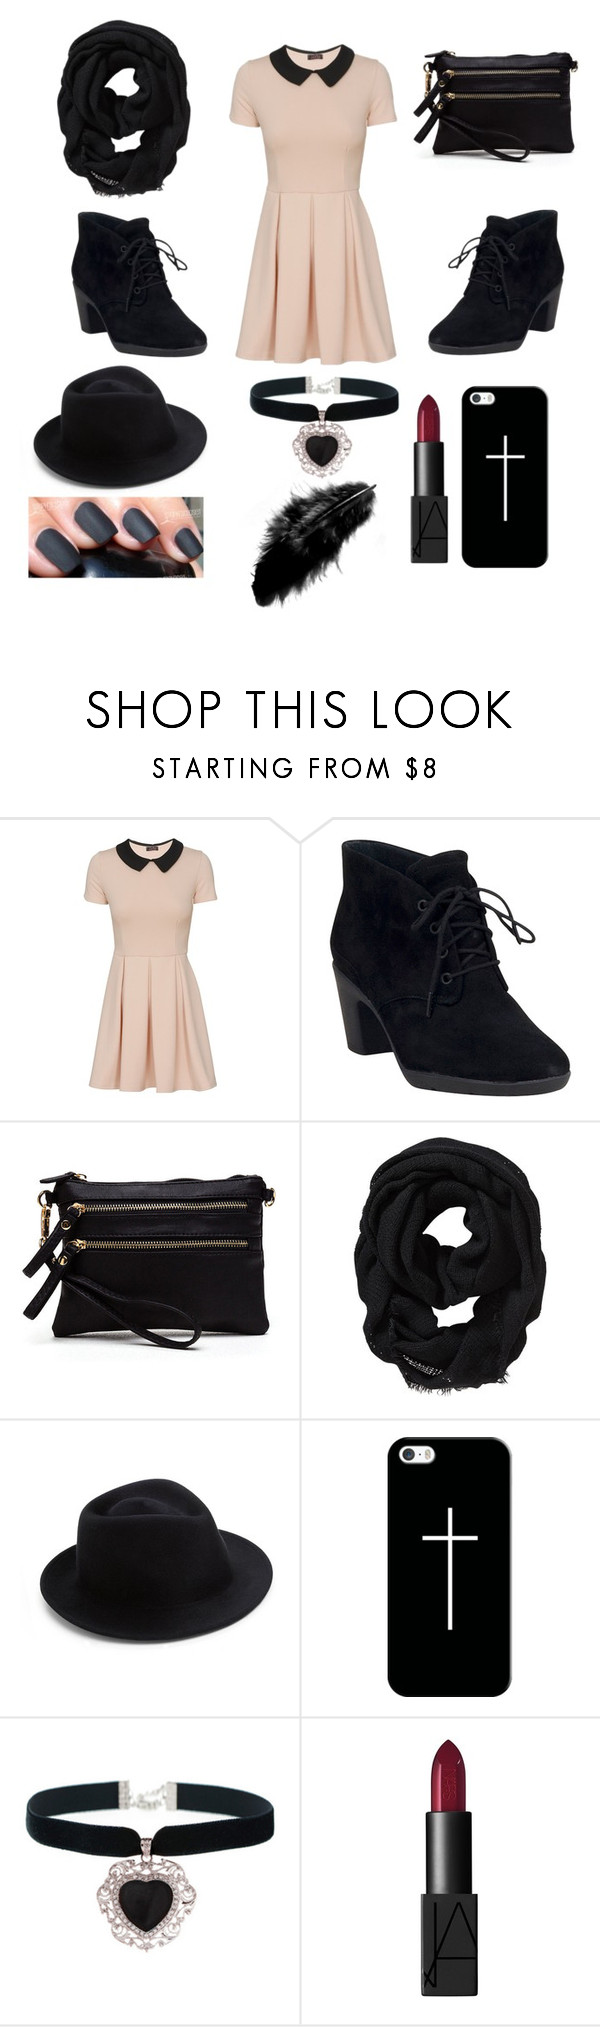 """""""Untitled #78"""" by theghostgirl157 ❤ liked on Polyvore featuring Clarks, Old Navy, Eugenia Kim, Casetify, Rock 'N Rose and NARS Cosmetics"""